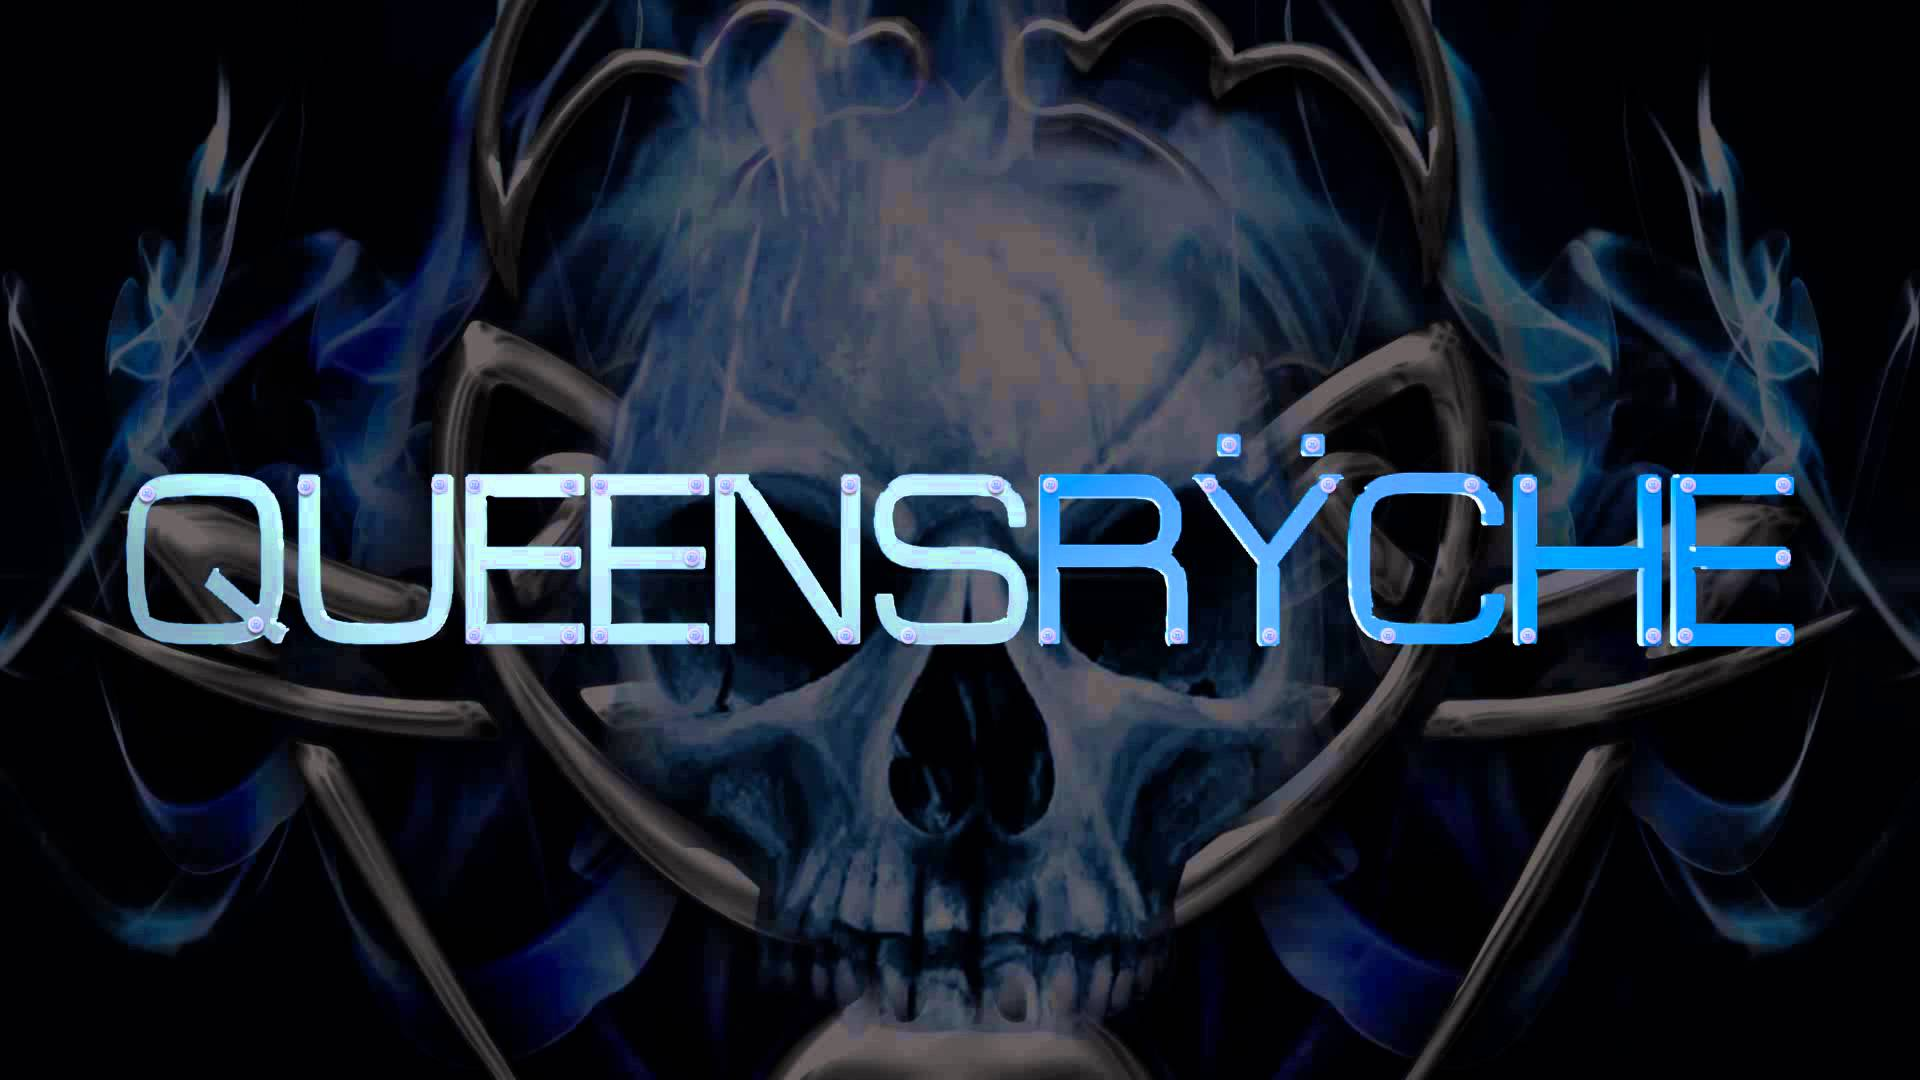 Queensrche - Redemption (New Song)